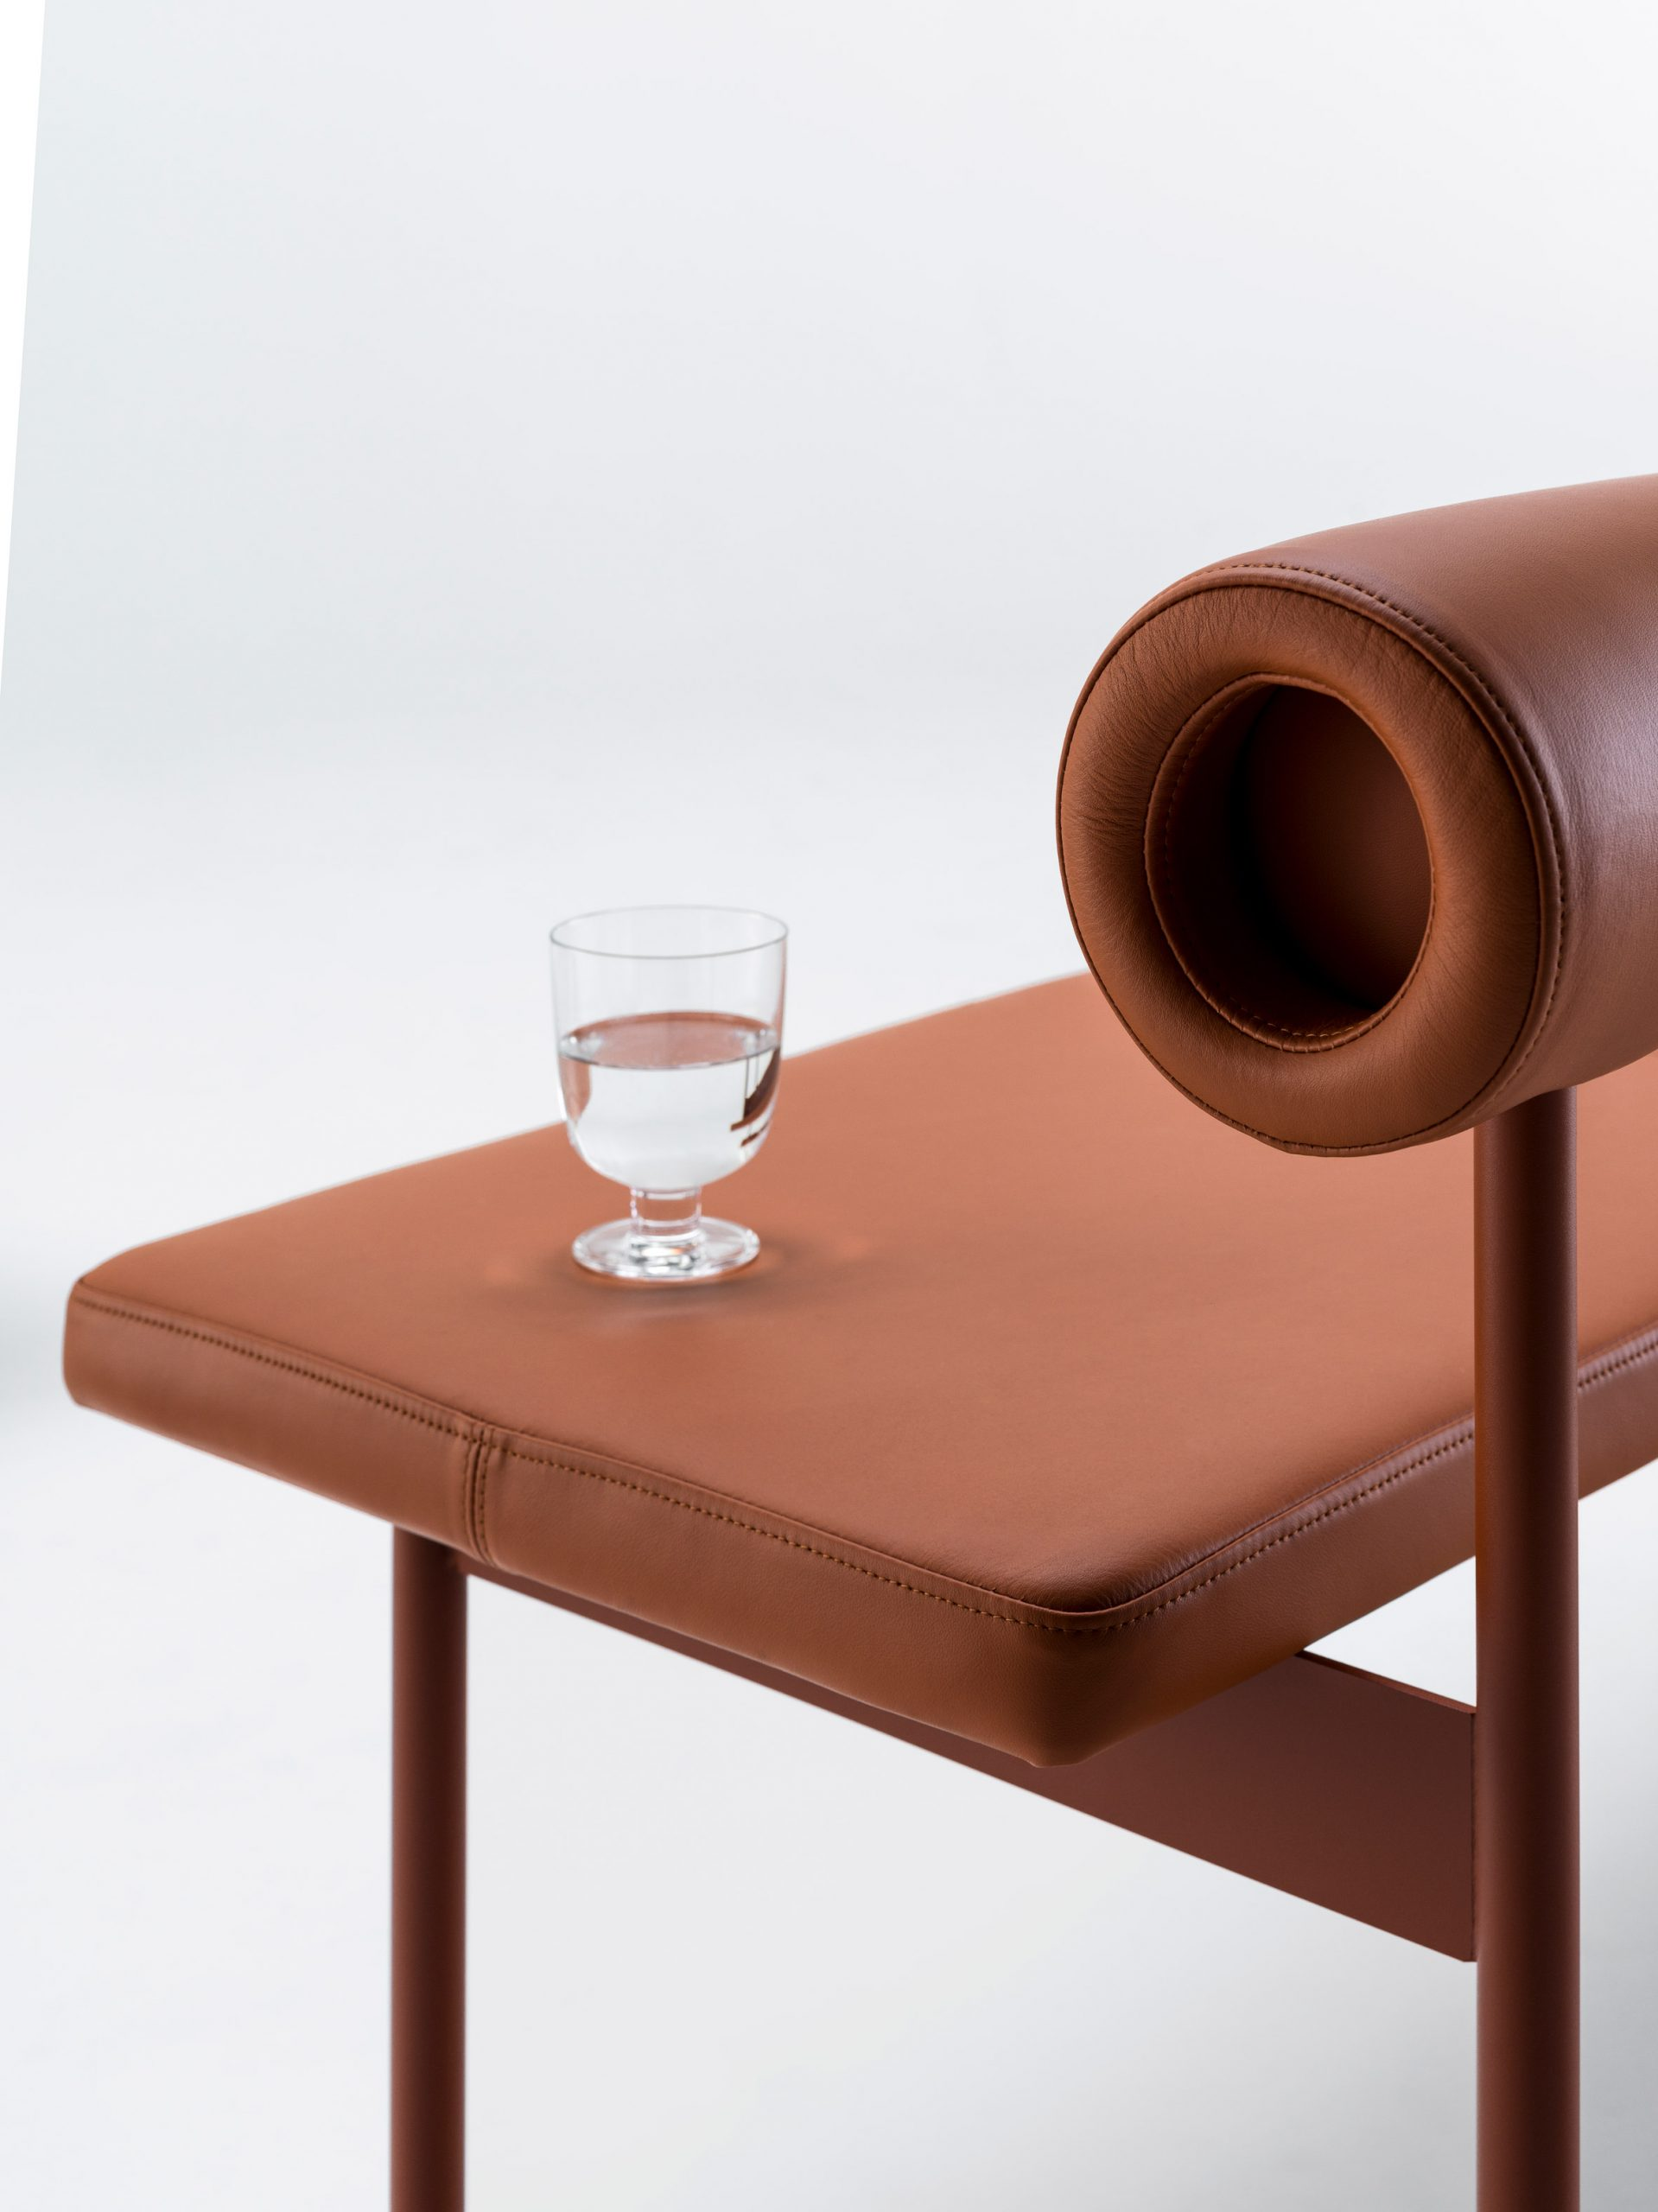 Font sofa in terracotta leather with a glass of water balanced on it